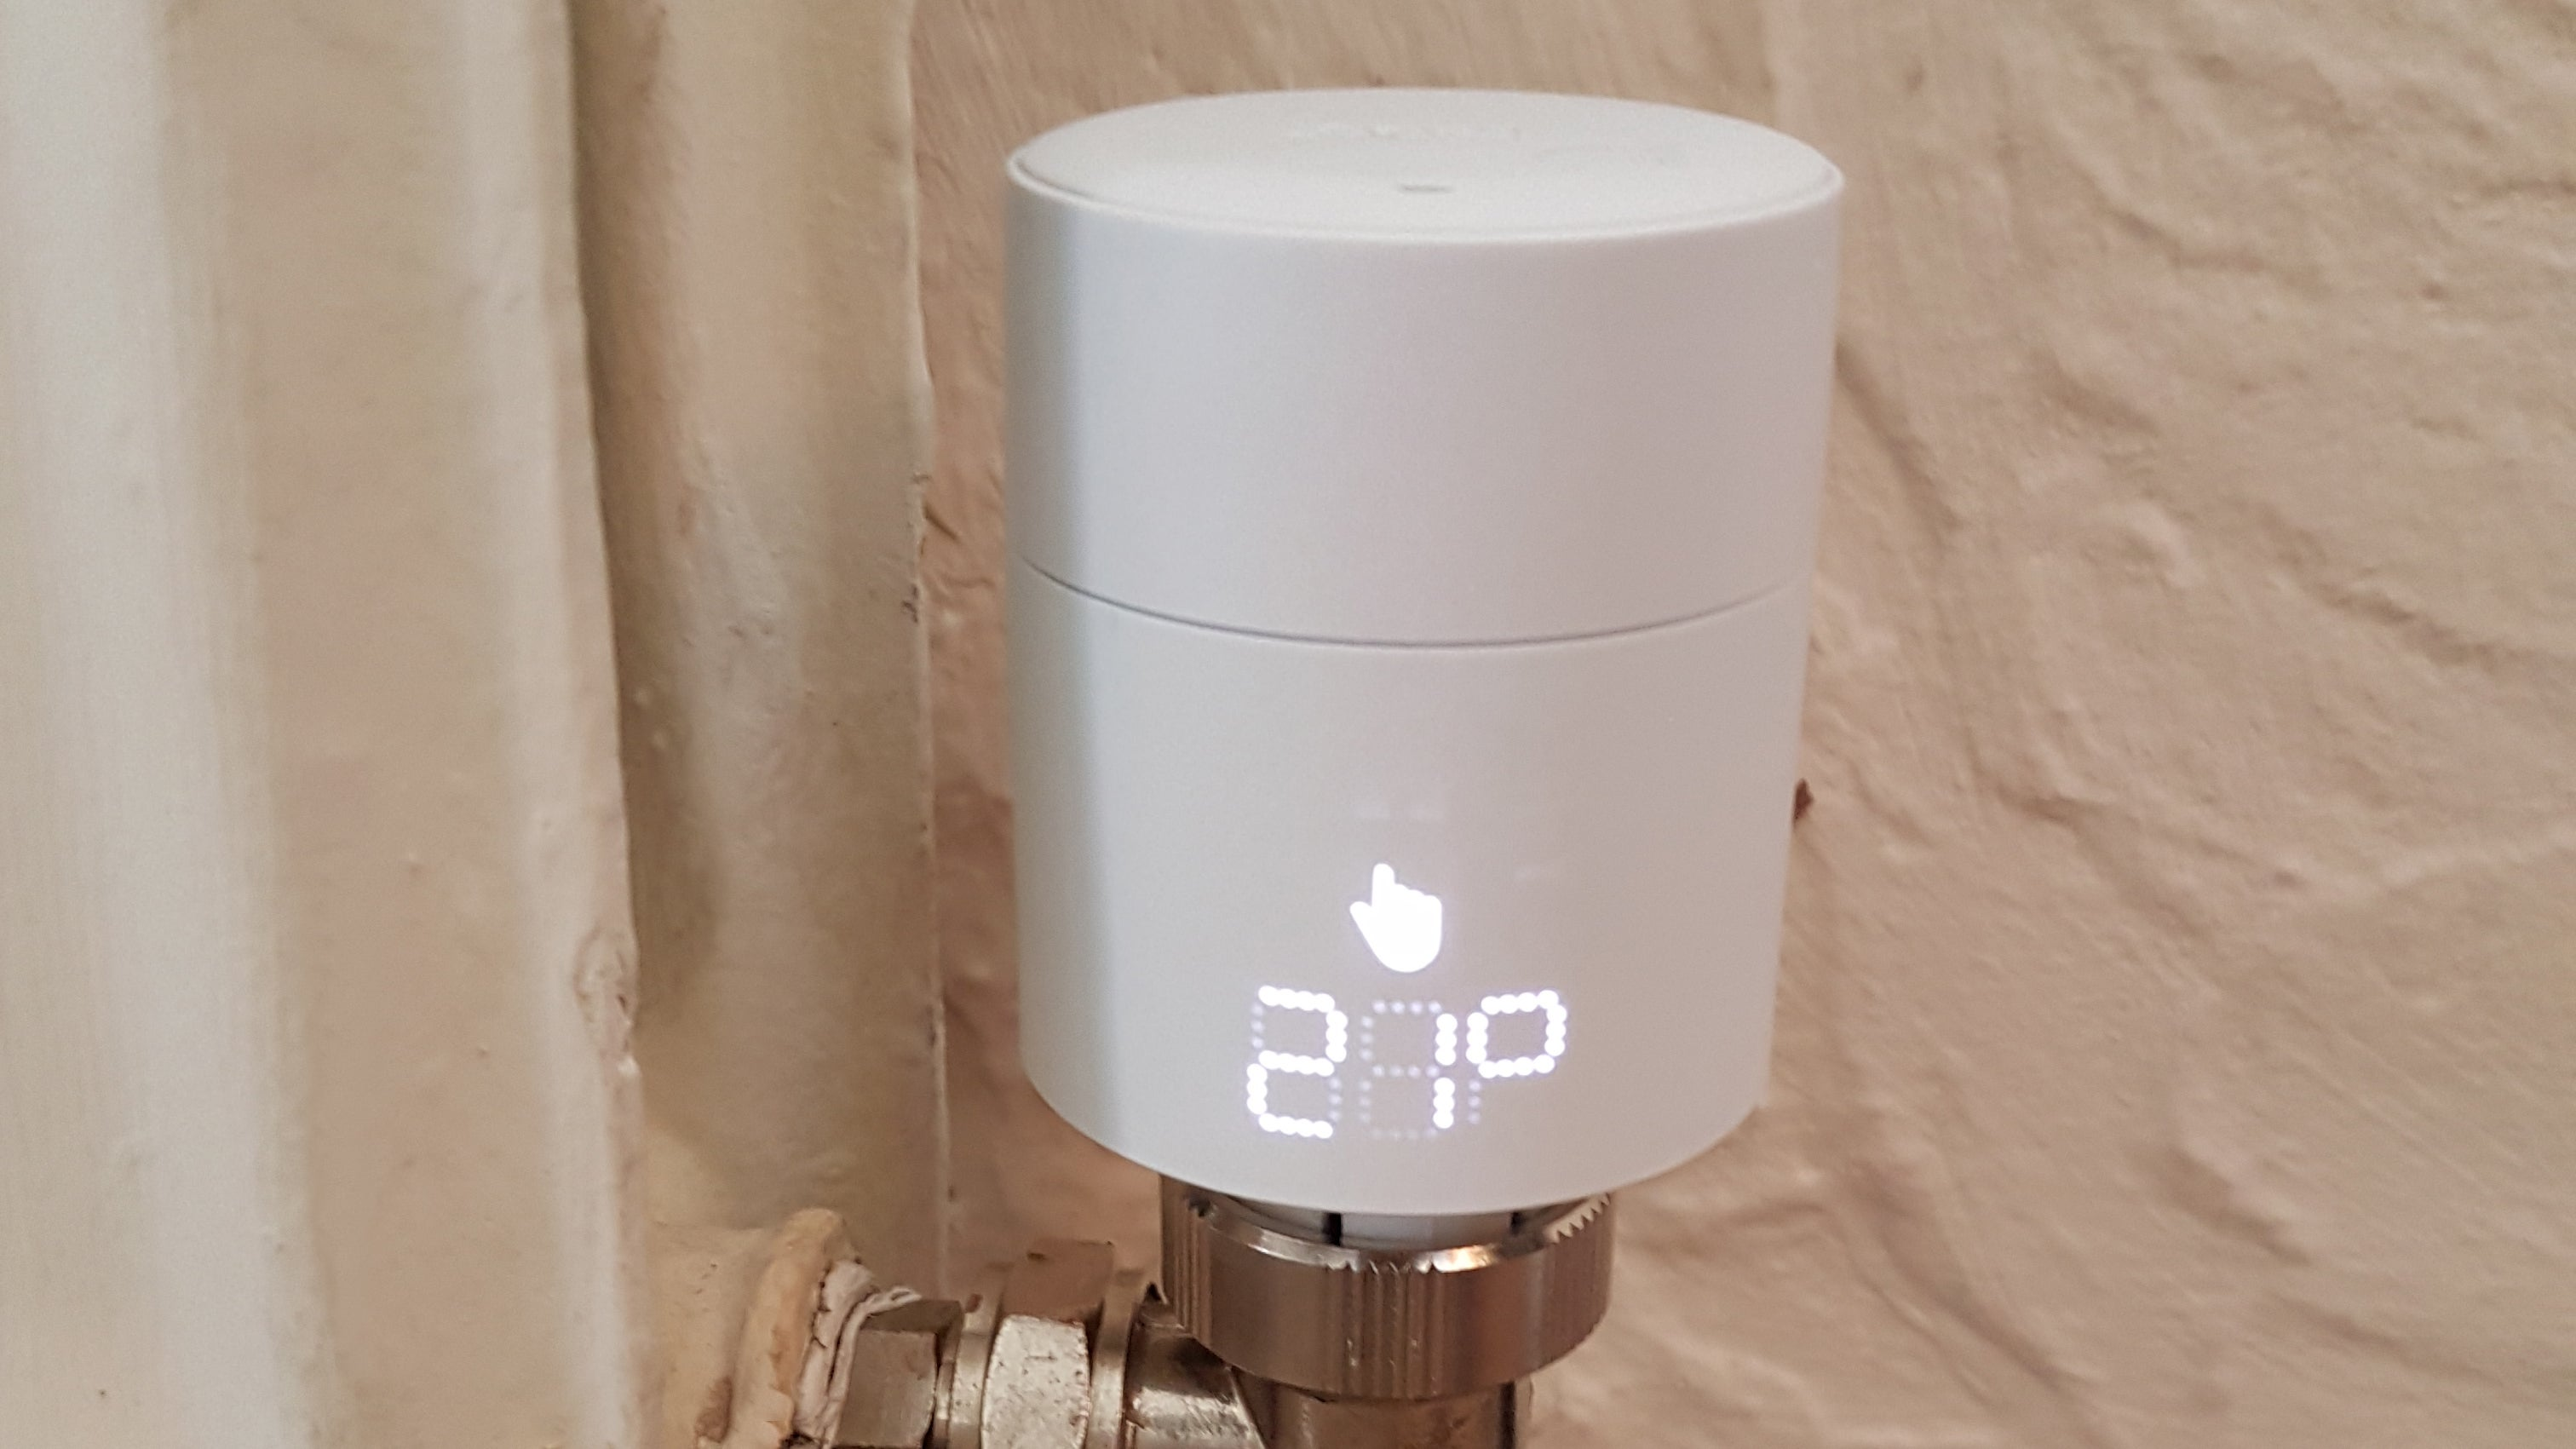 Tado Smart Radiator Thermostat Starter Kit Review